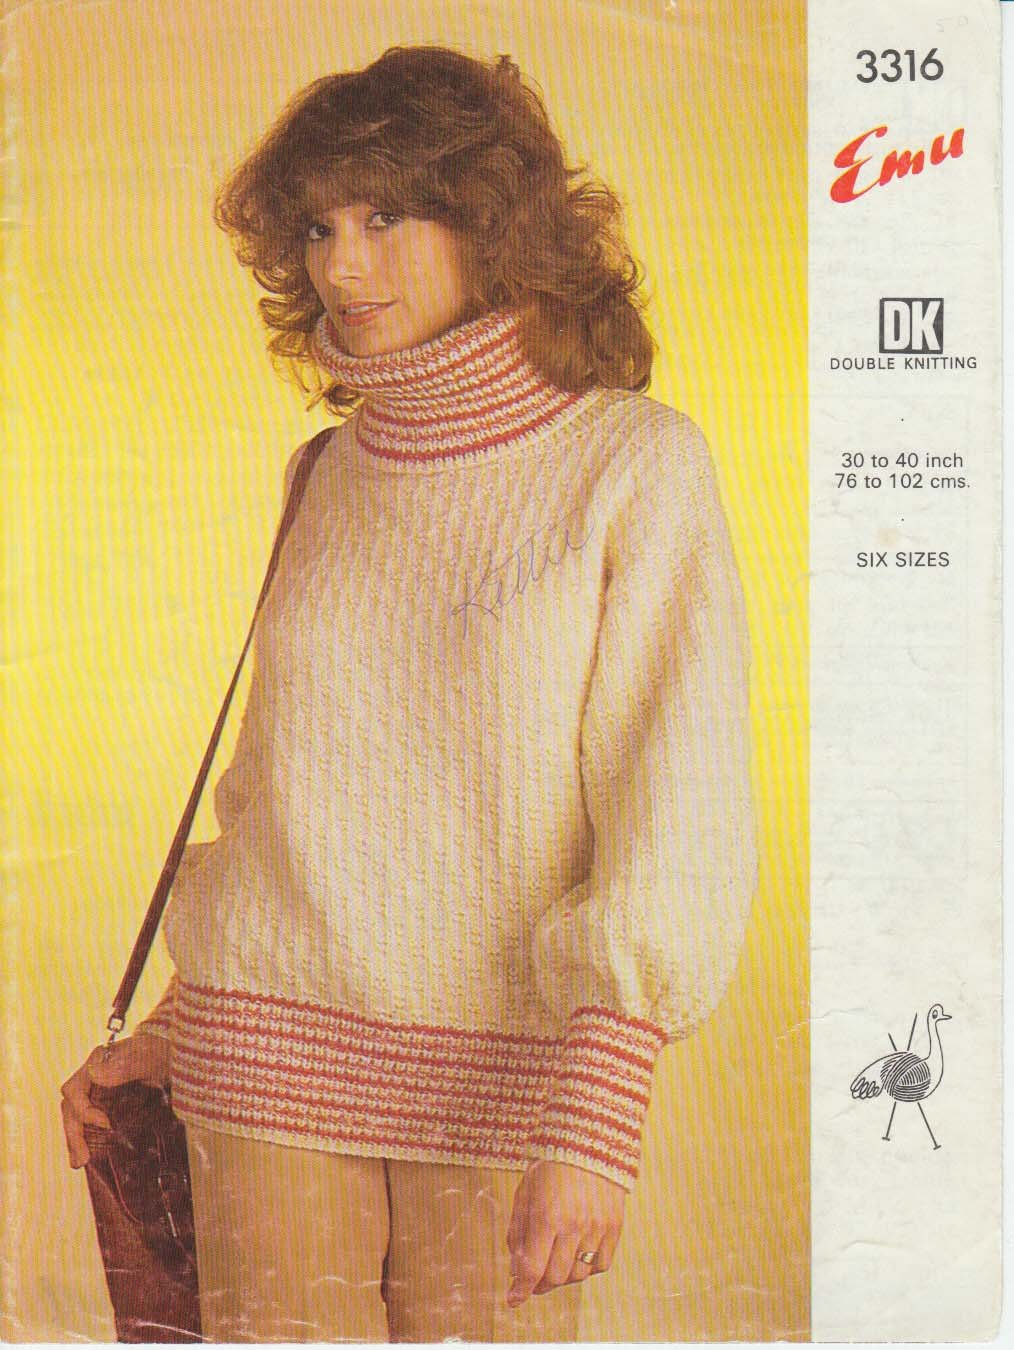 Emu Knitting Pattern #3316 to knit sweater in 6 sizes